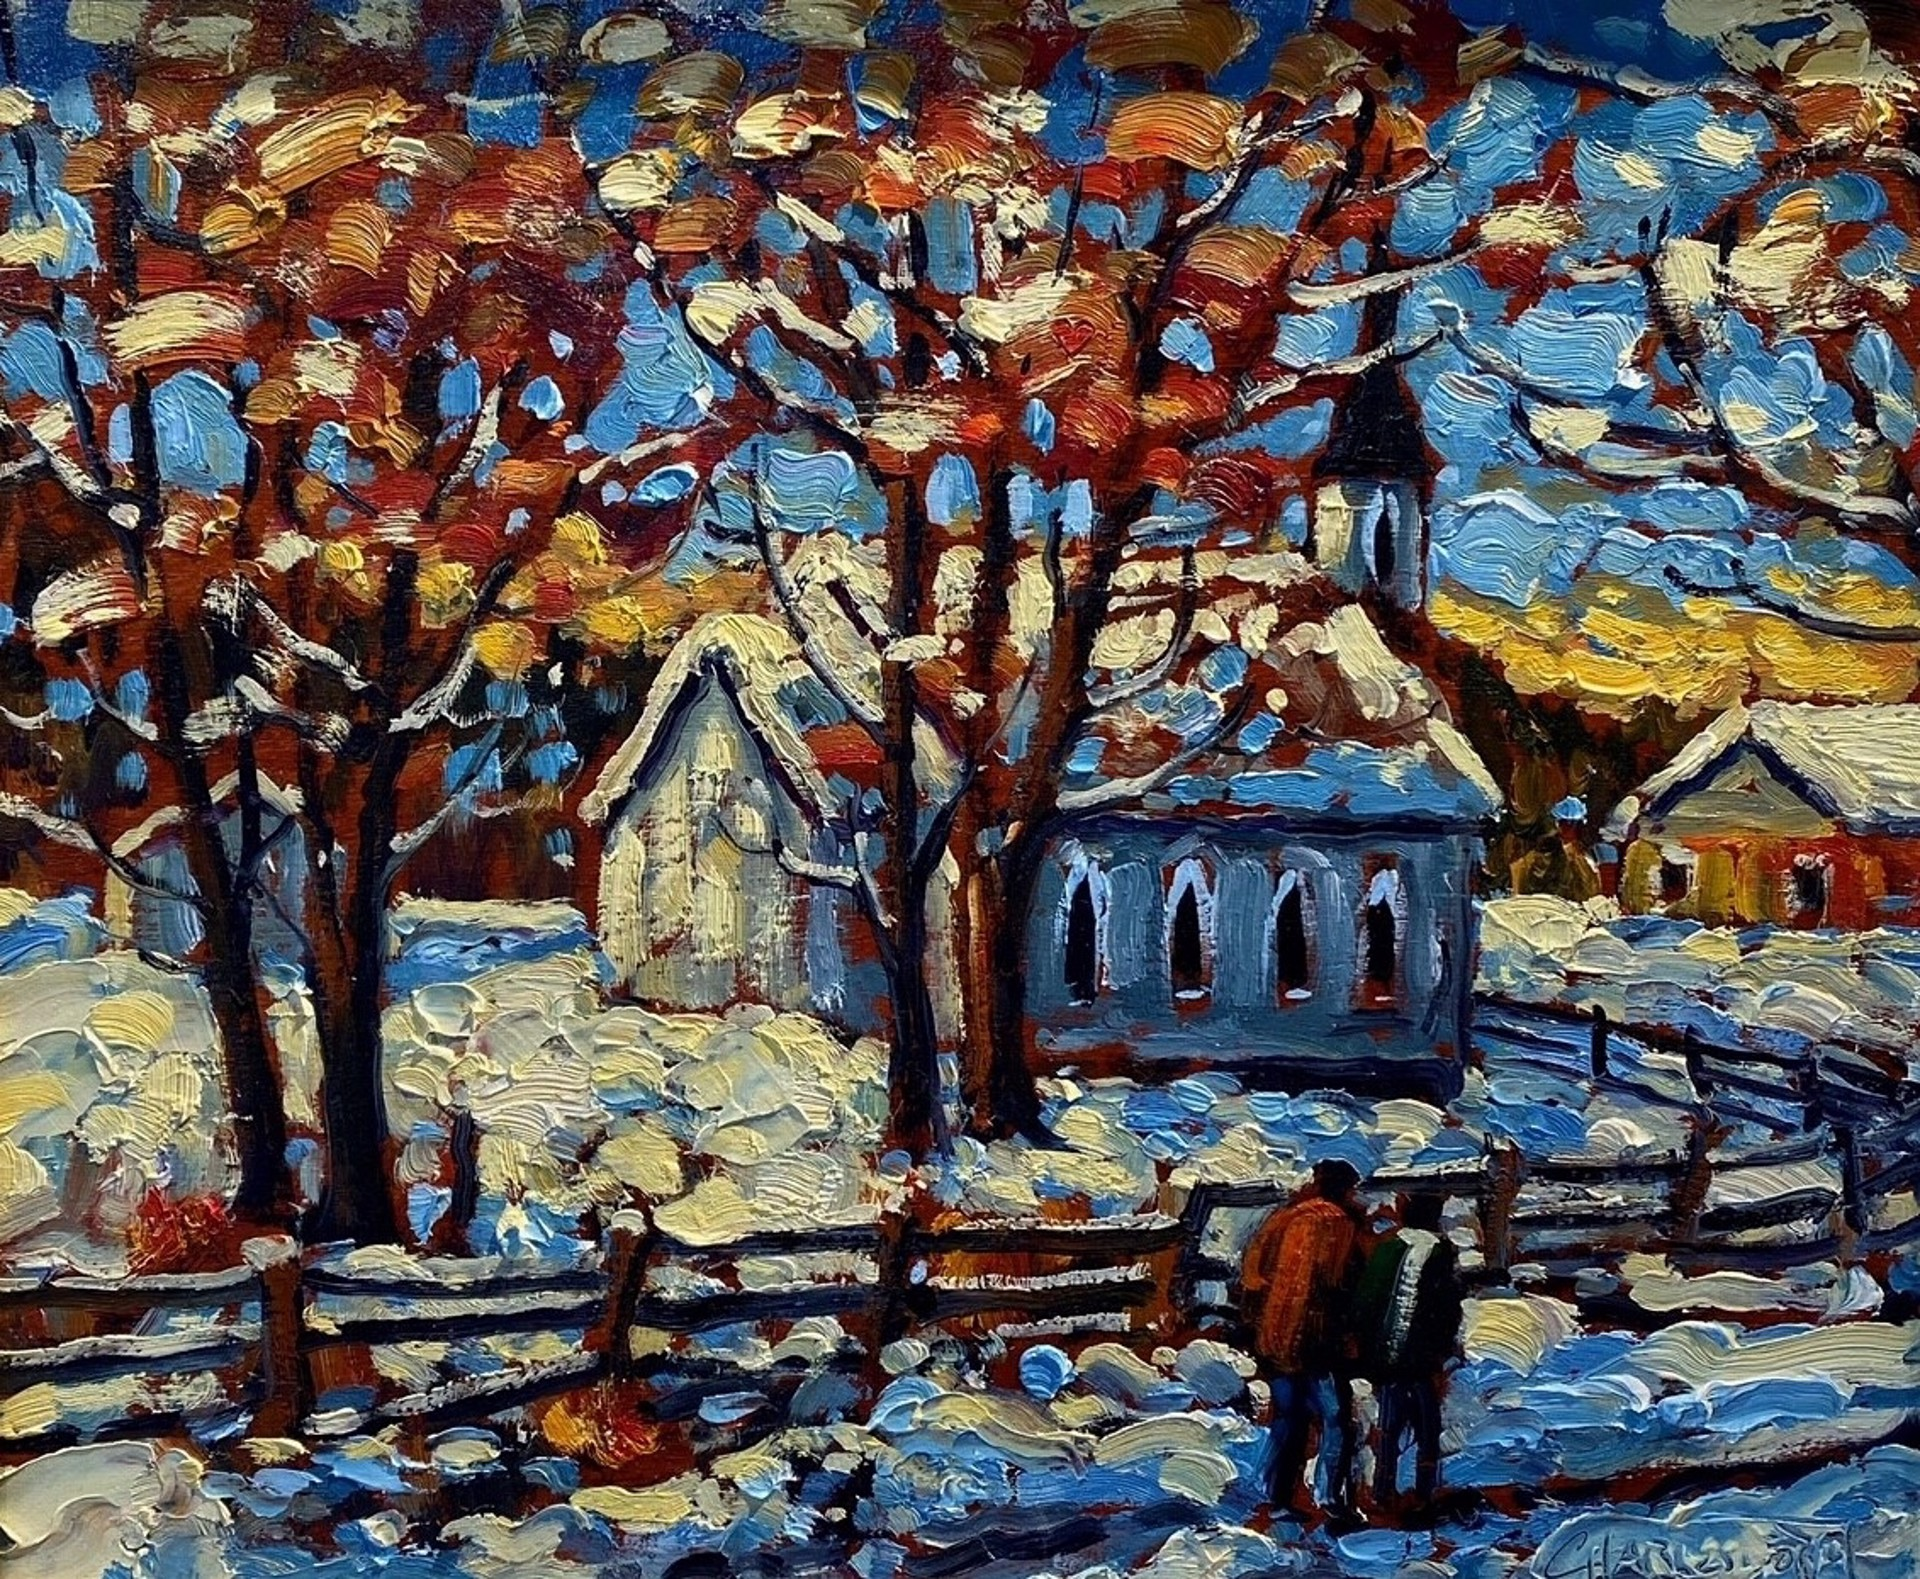 Rod Charlesworth - Early Snow by Historical Art